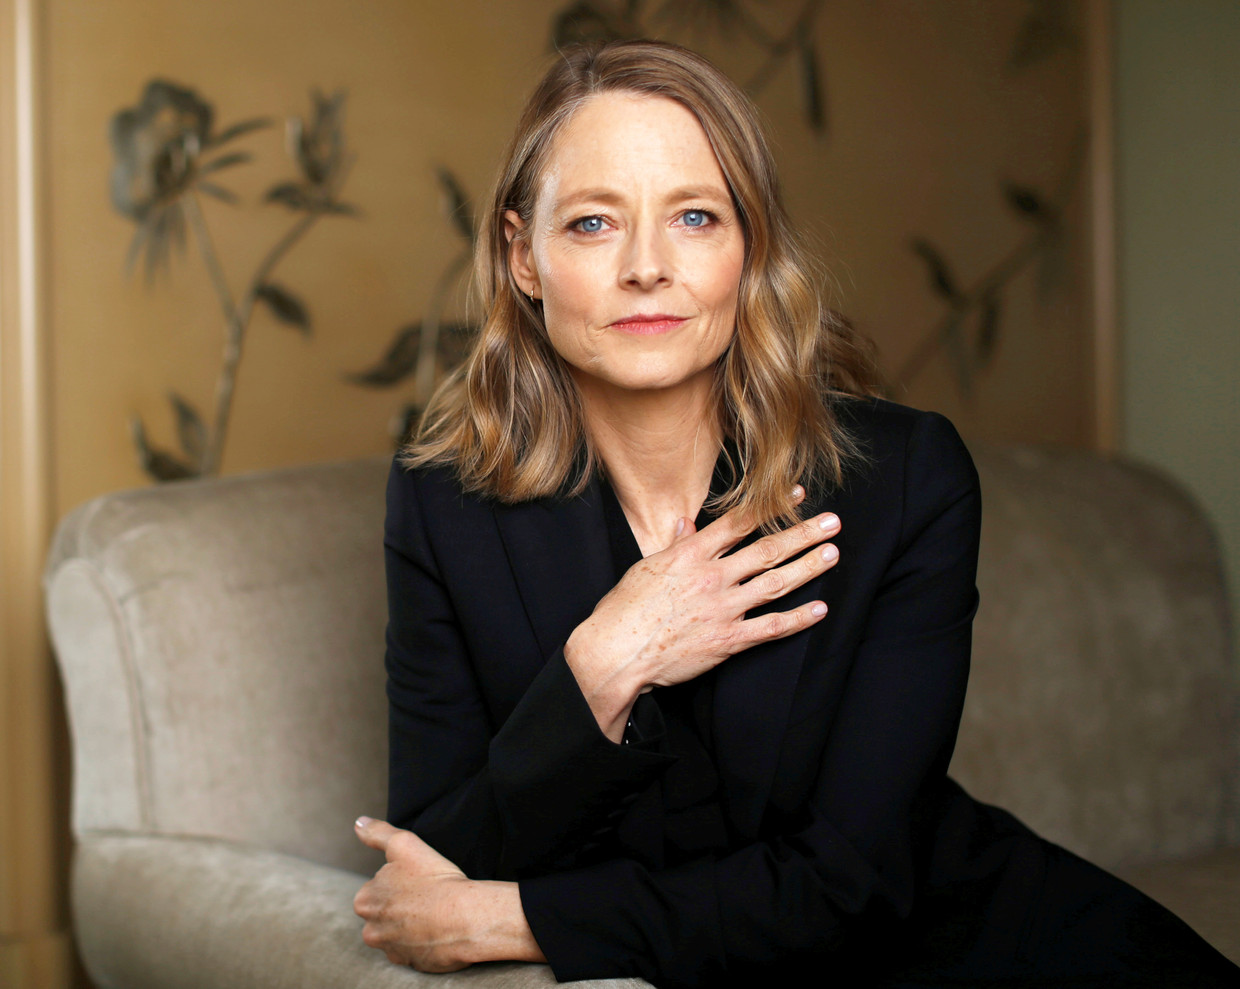 Director Jodie Foster poses for a portrait while promoting the upcoming movie